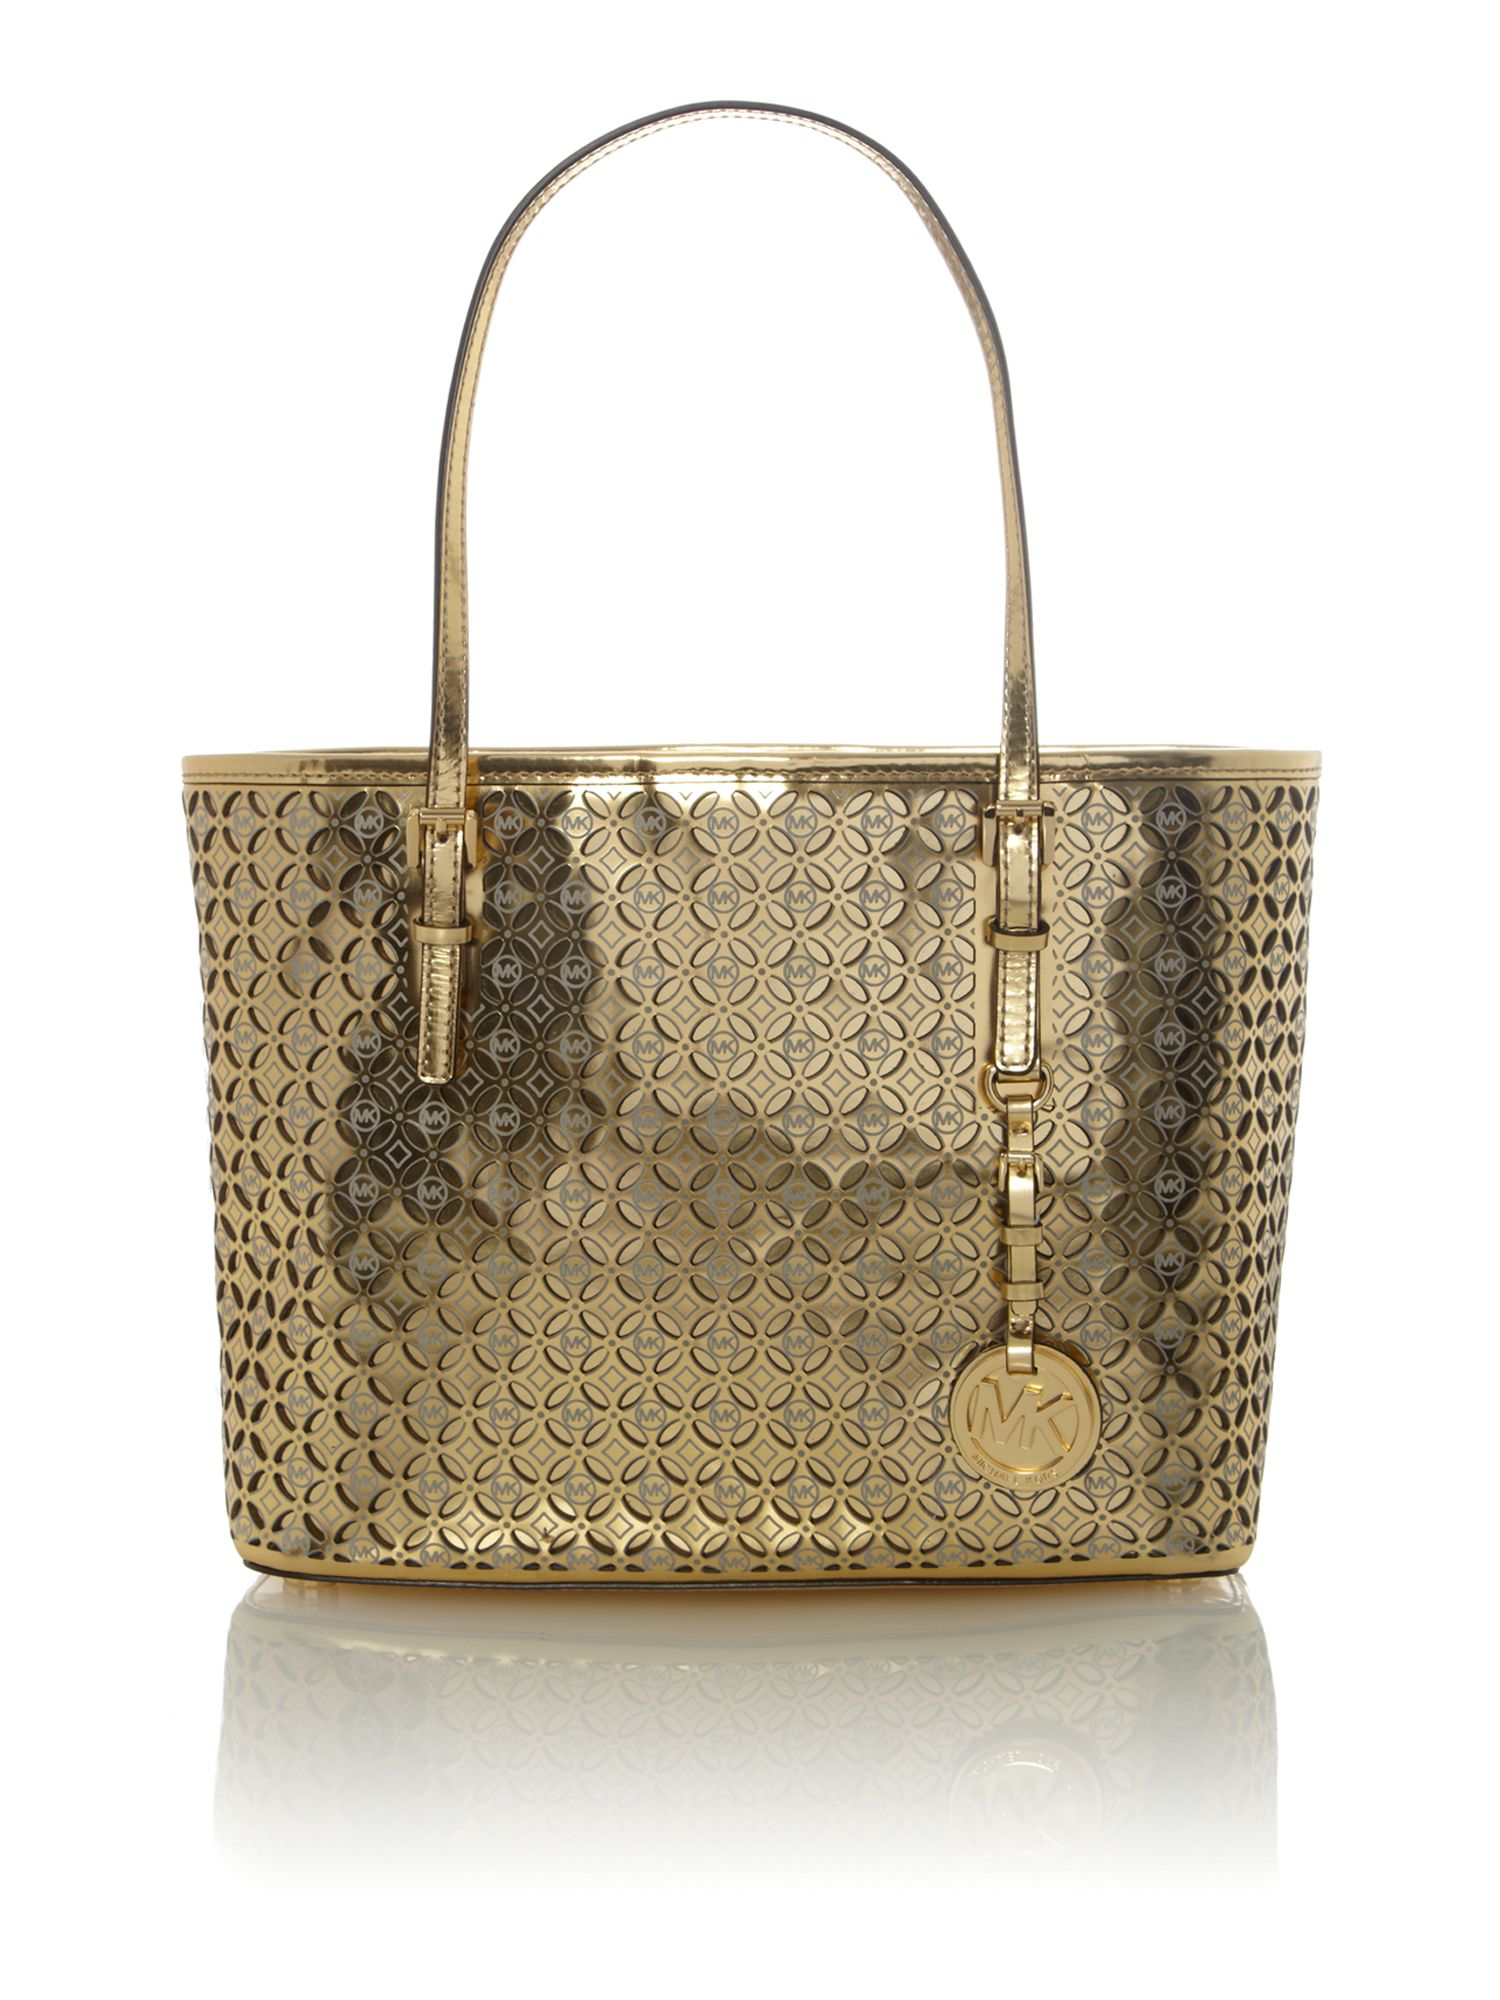 michael kors flower perforated gold small tote bag in gold